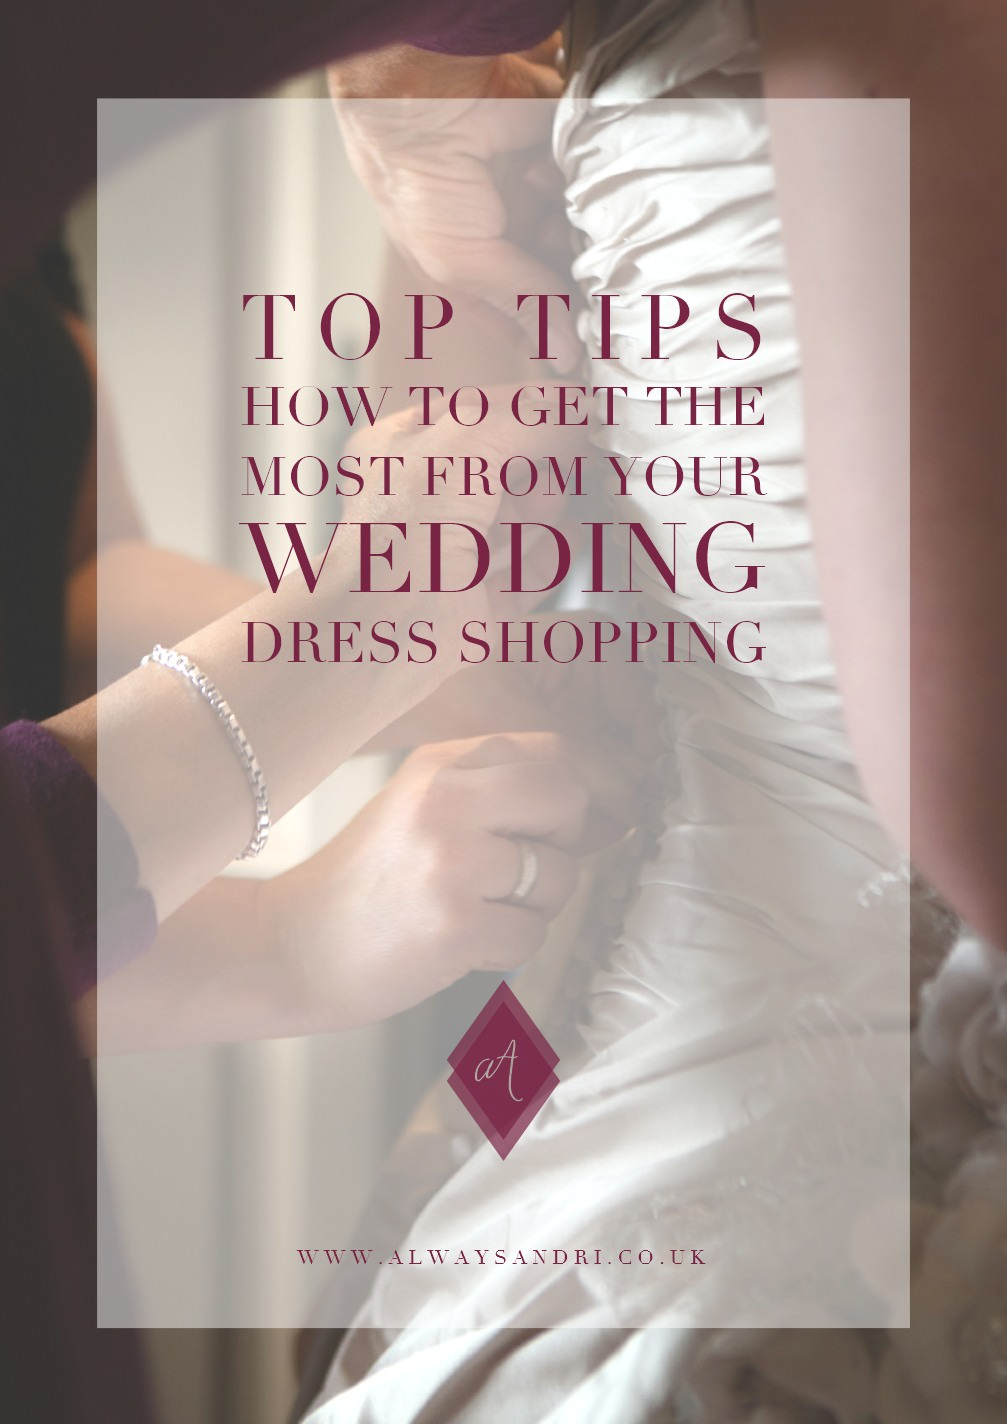 How to get the most from your wedding dress shopping